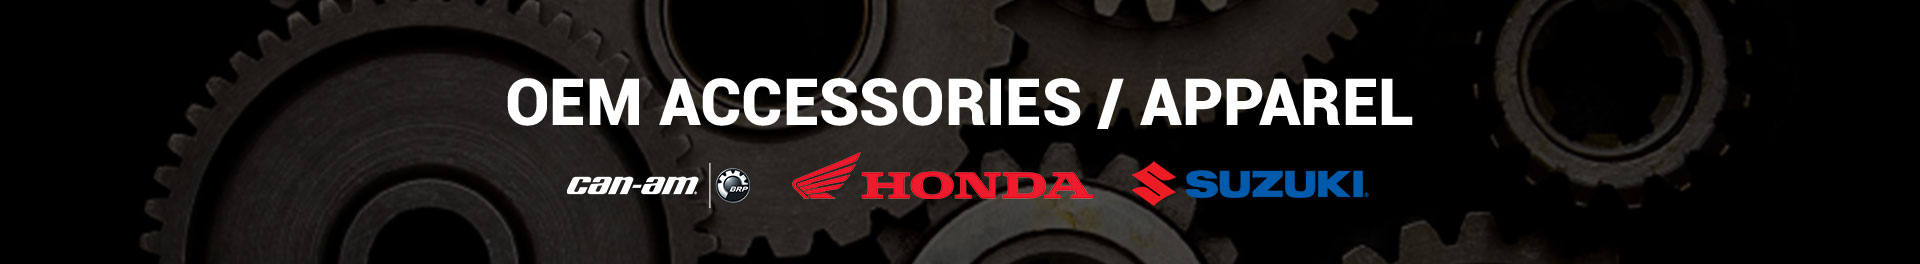 OEM Accessories / Apparel Can-Am, Honda, Suzuki.